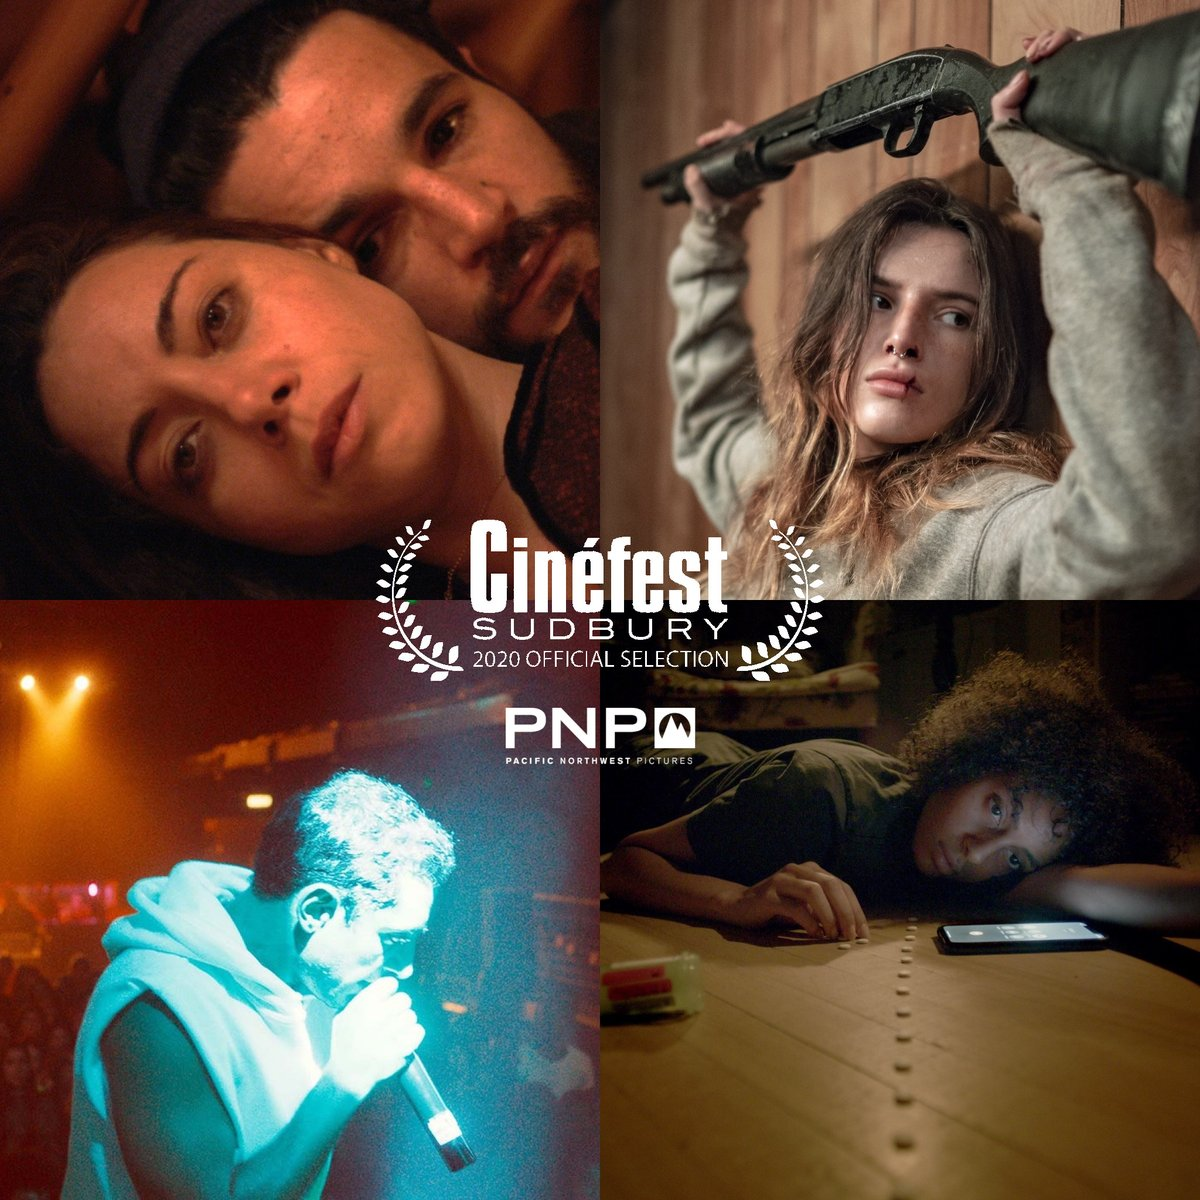 Pacific Northwest Pictures On Twitter Another Day Another Festival Cinefestsudbury Has Four Pnp Films You Can Get Your Tickets Or Virtual Cinema Pass On Their Website Https T Co Eb37kd62kw Bellathorne Aubreyplaza Rizahmed Indiefilm Cinefest